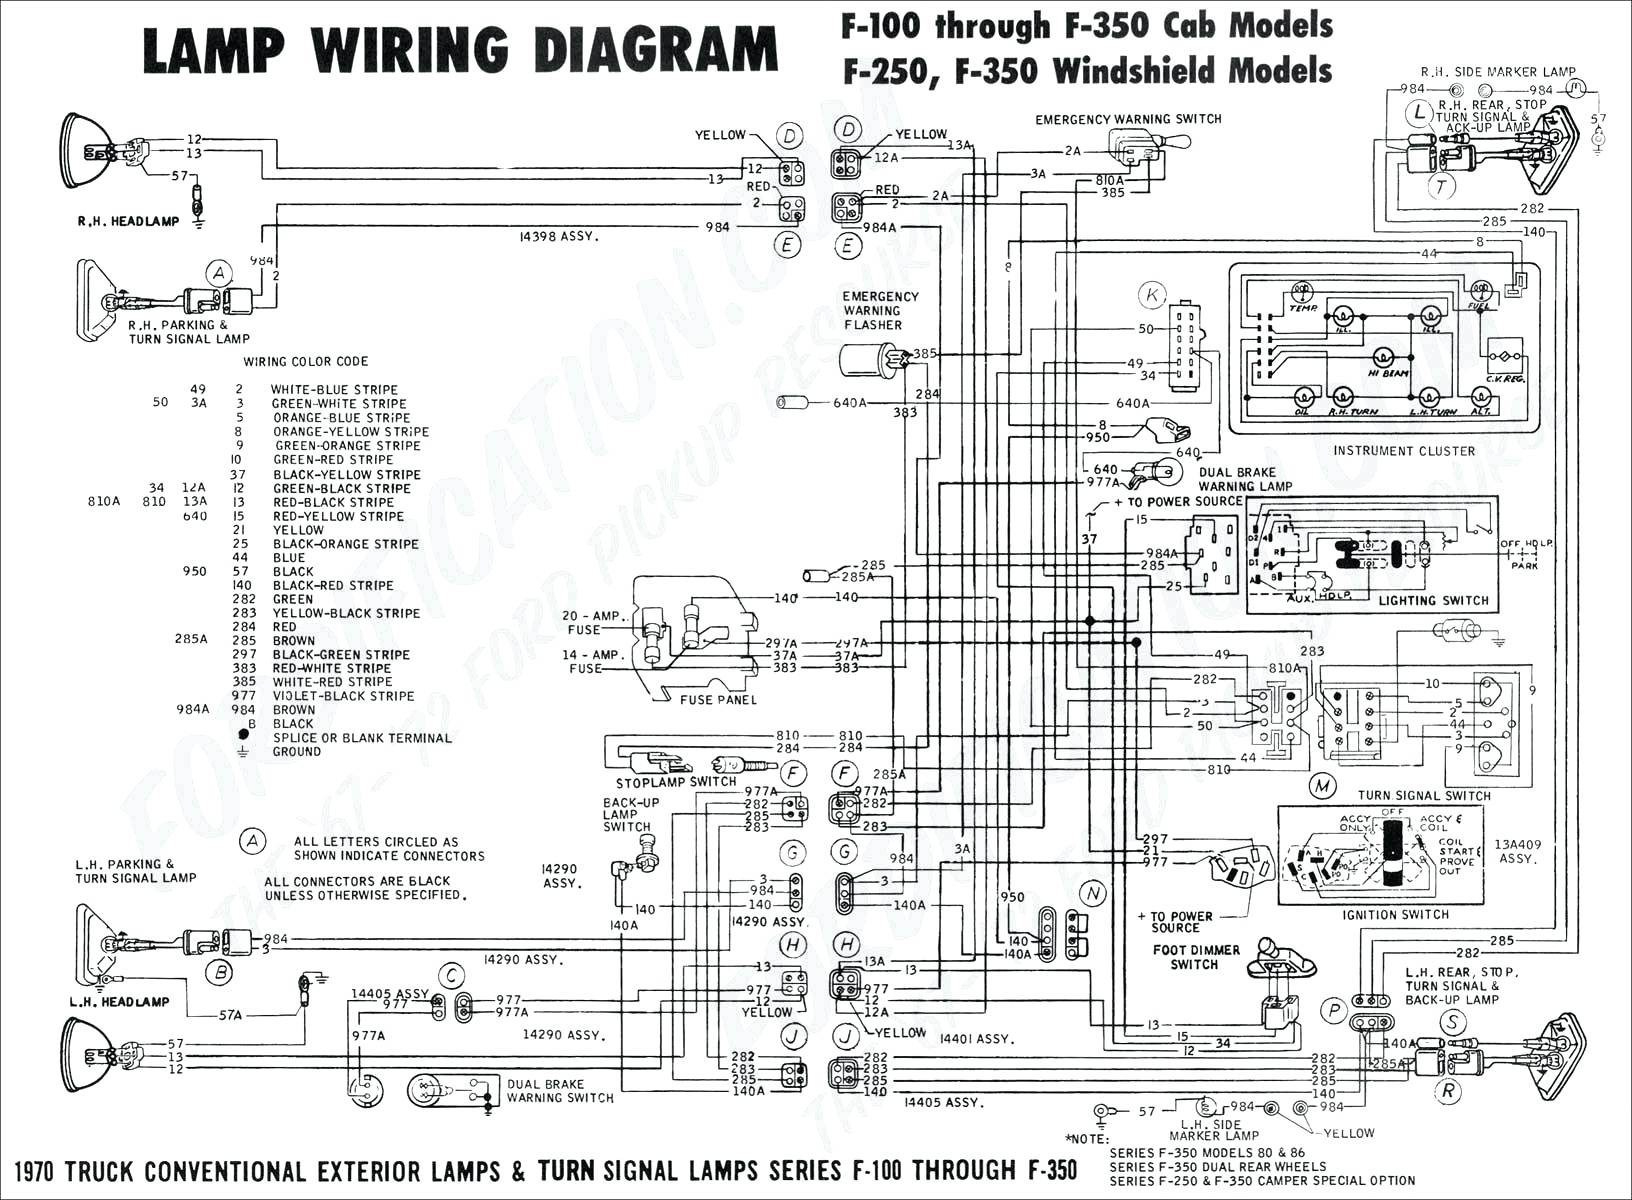 DIAGRAM] 1976 Starcraft Boat Wiring Diagram FULL Version HD Quality Wiring  Diagram - KIDNEYDIAGRAM.AUBE-SIAE.FRaube-siae.fr